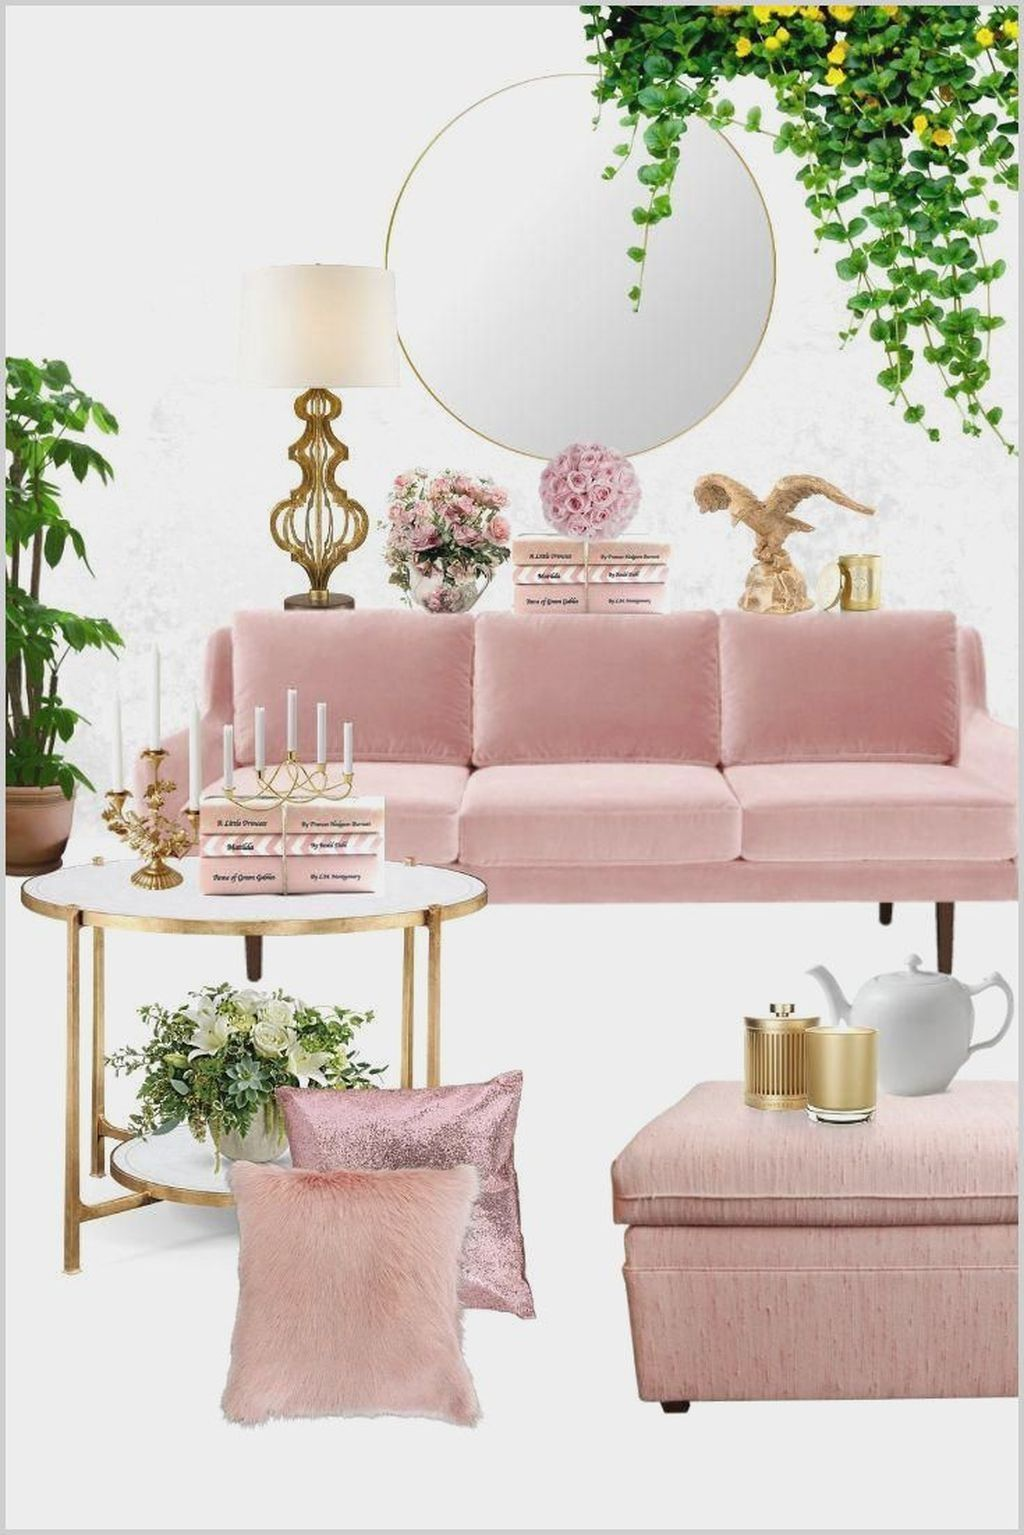 20 Cute Pastel Living Room Design Ideas That You Should Have Pastel Living Room Blush Pink Living Room Green Living Room Decor